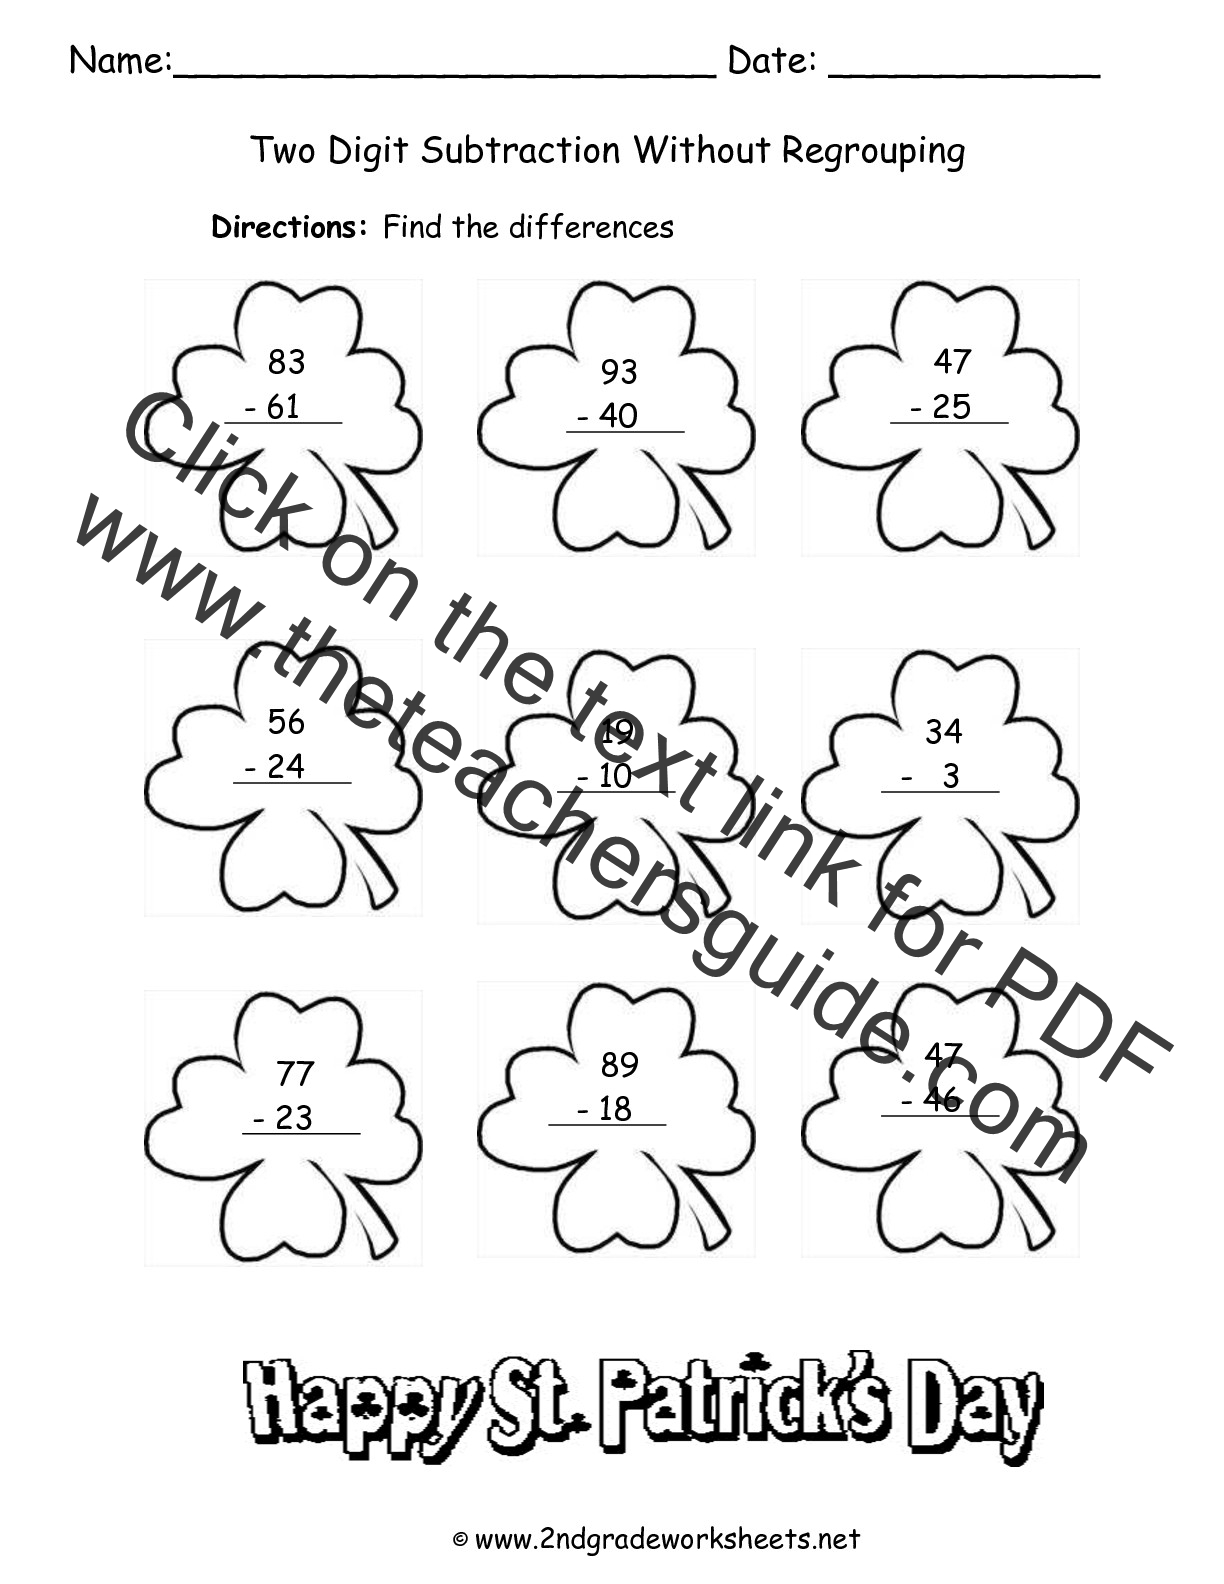 St. Patrick'-s Day math worksheets | President'-s Day | Pinterest ...